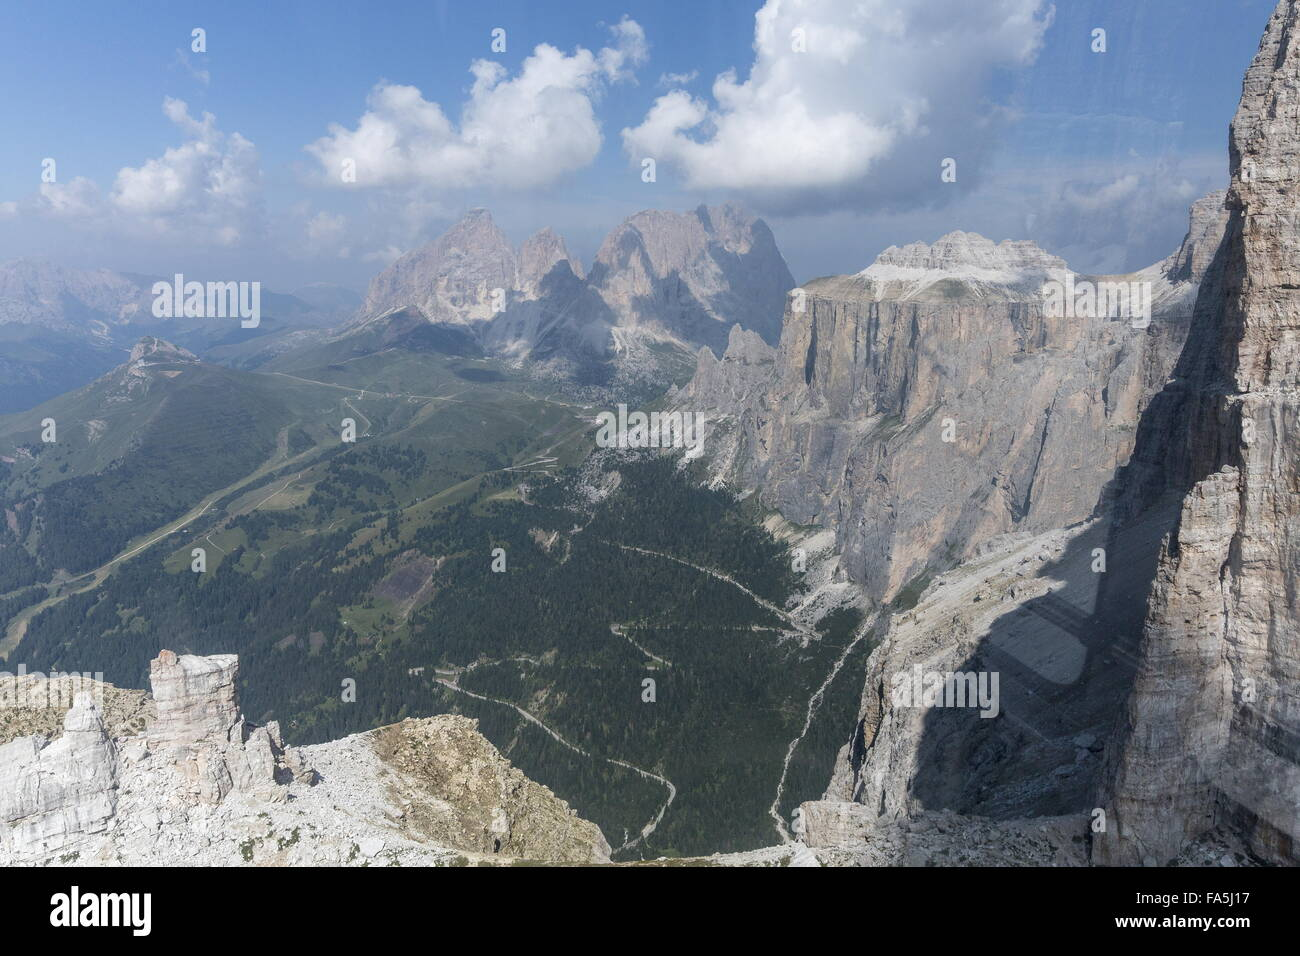 Looking west along the scarp of the Sella Group, Sella Gruppe, in the Dolomites, Italy. - Stock Image